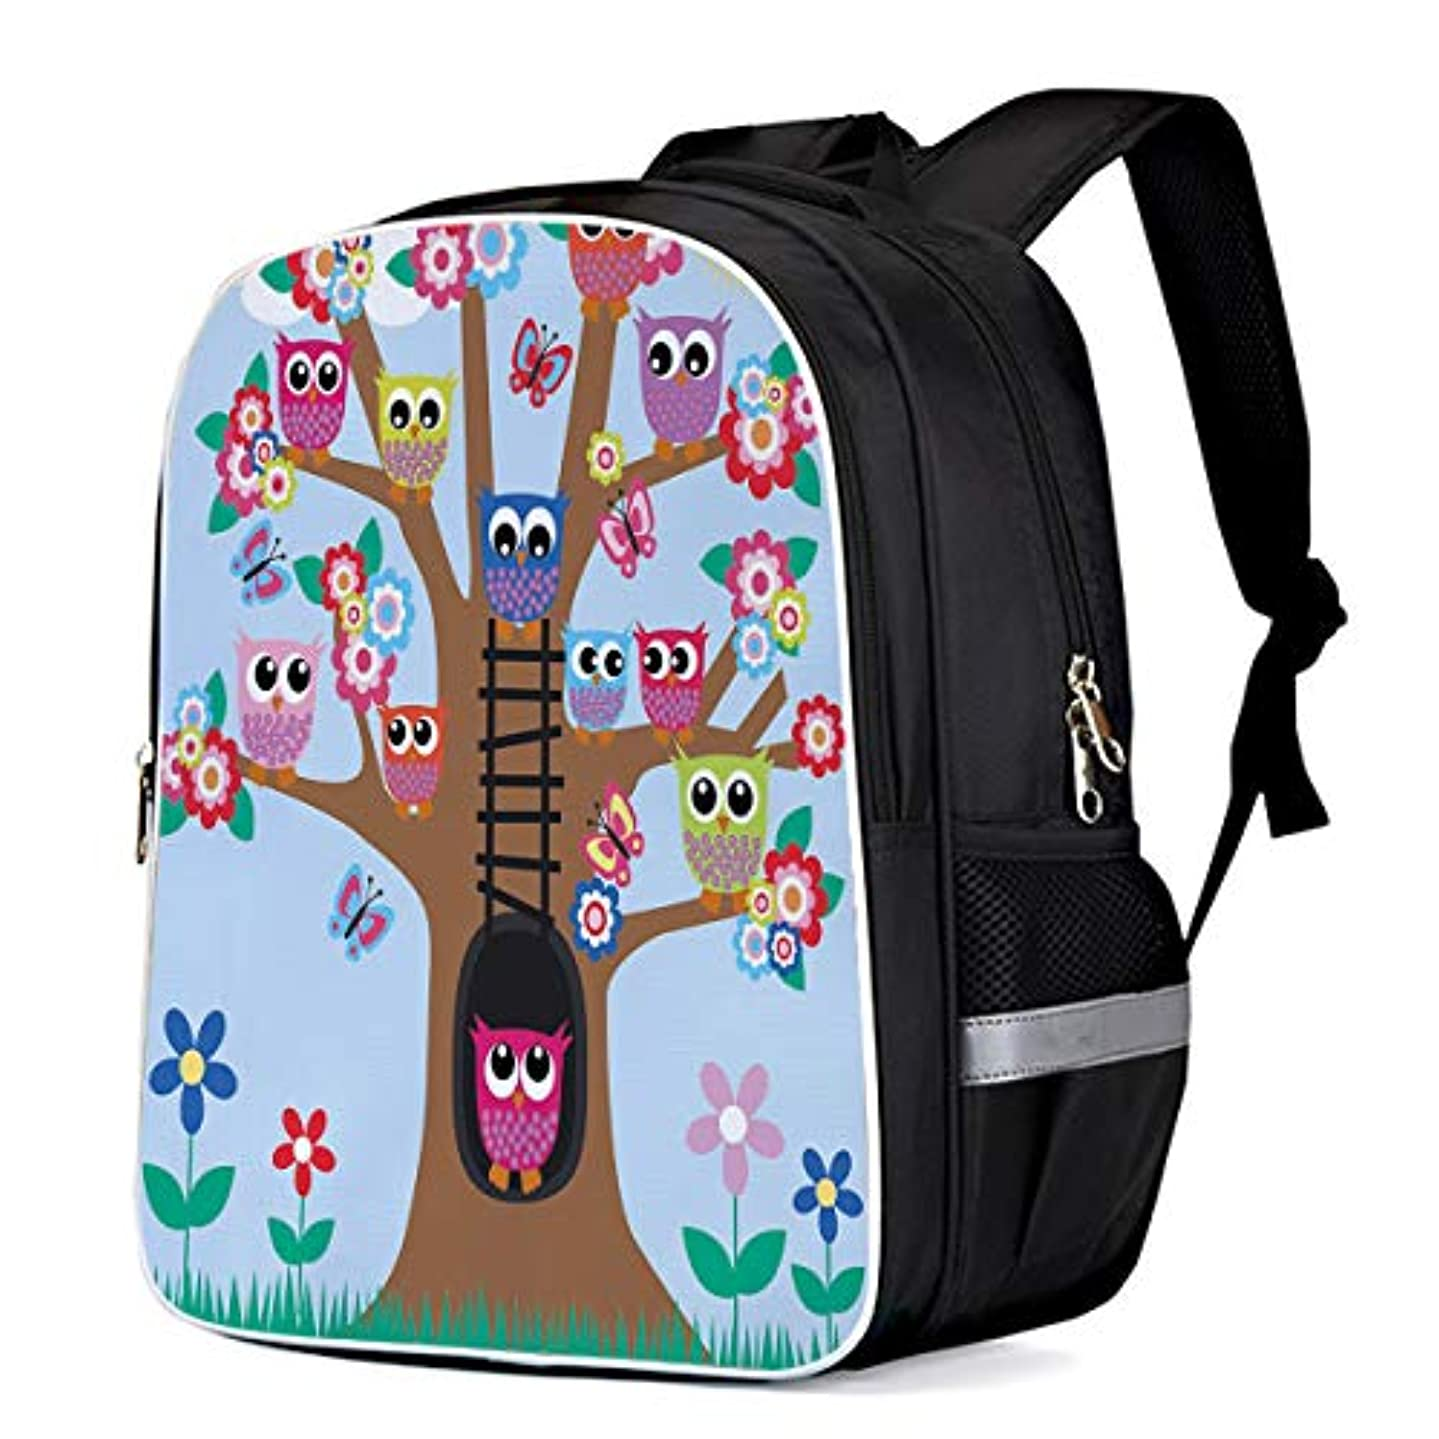 Cute Owls on Tree School Book Backpack for Teens Boys Girls, Colorful Animal Carry Bag for Day Trips Mountain Sports (Large)